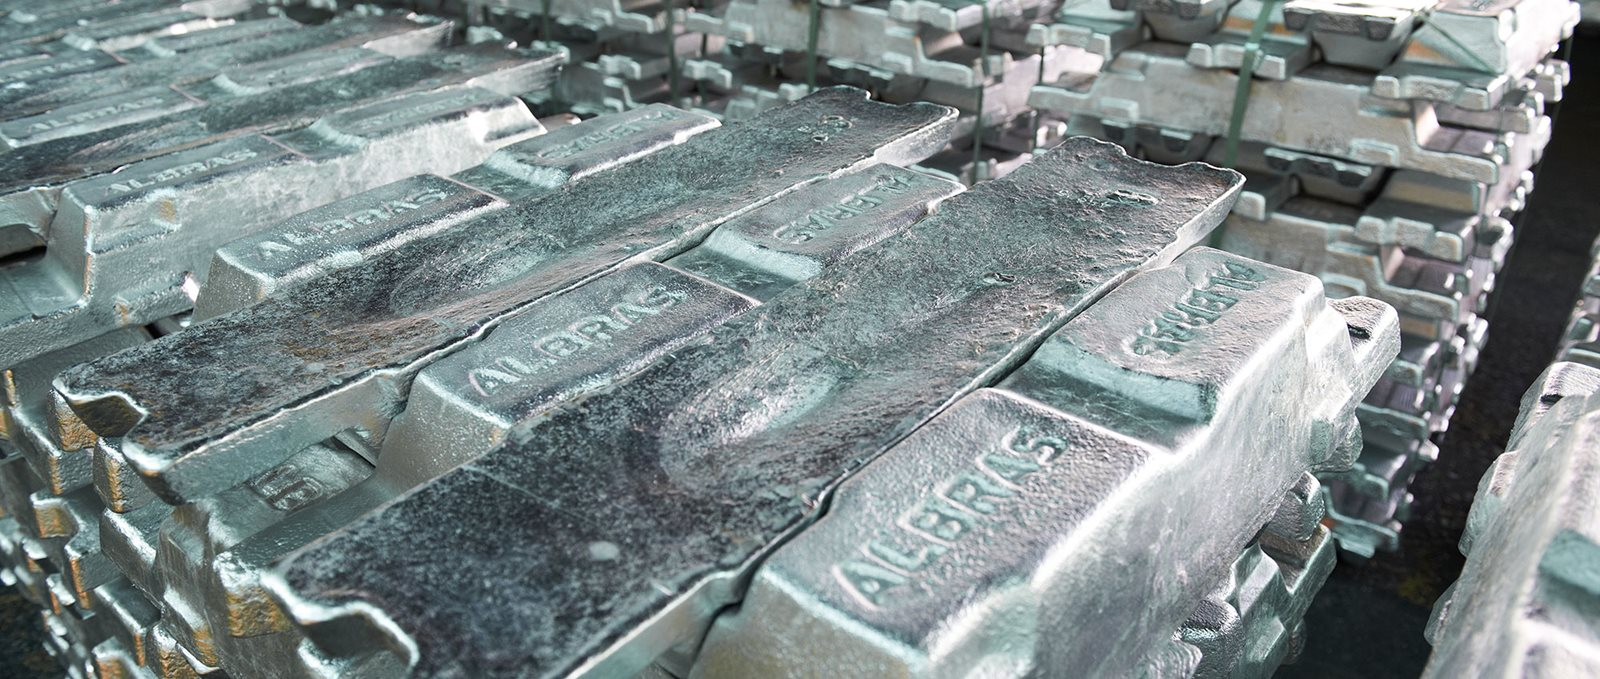 Albras aluminium plant in Brazil resumes full operations following court decisions to lift the production embargoes on Alunorte